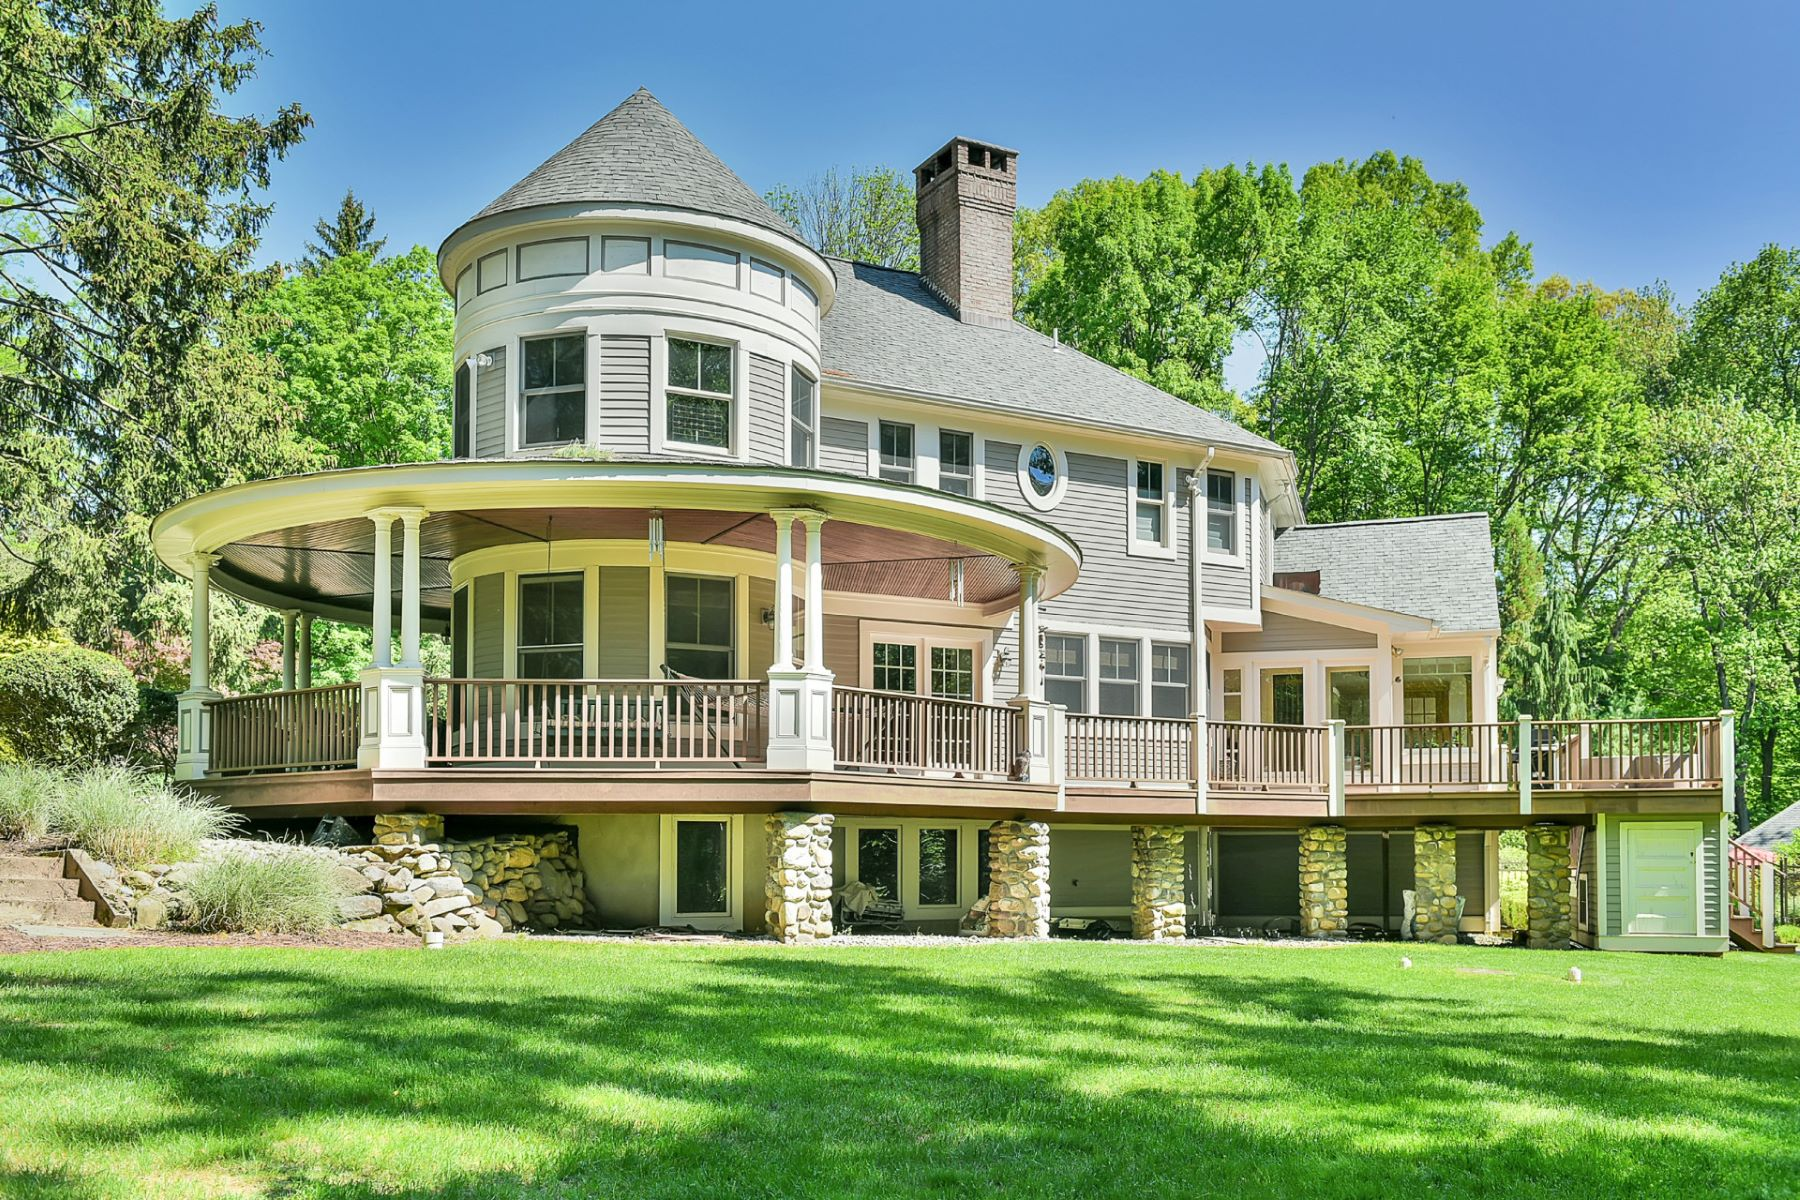 Single Family Home for Sale at Resort Style Estate 2.3 ac 424 West Saddle River Road, Upper Saddle River, New Jersey 07458 United States